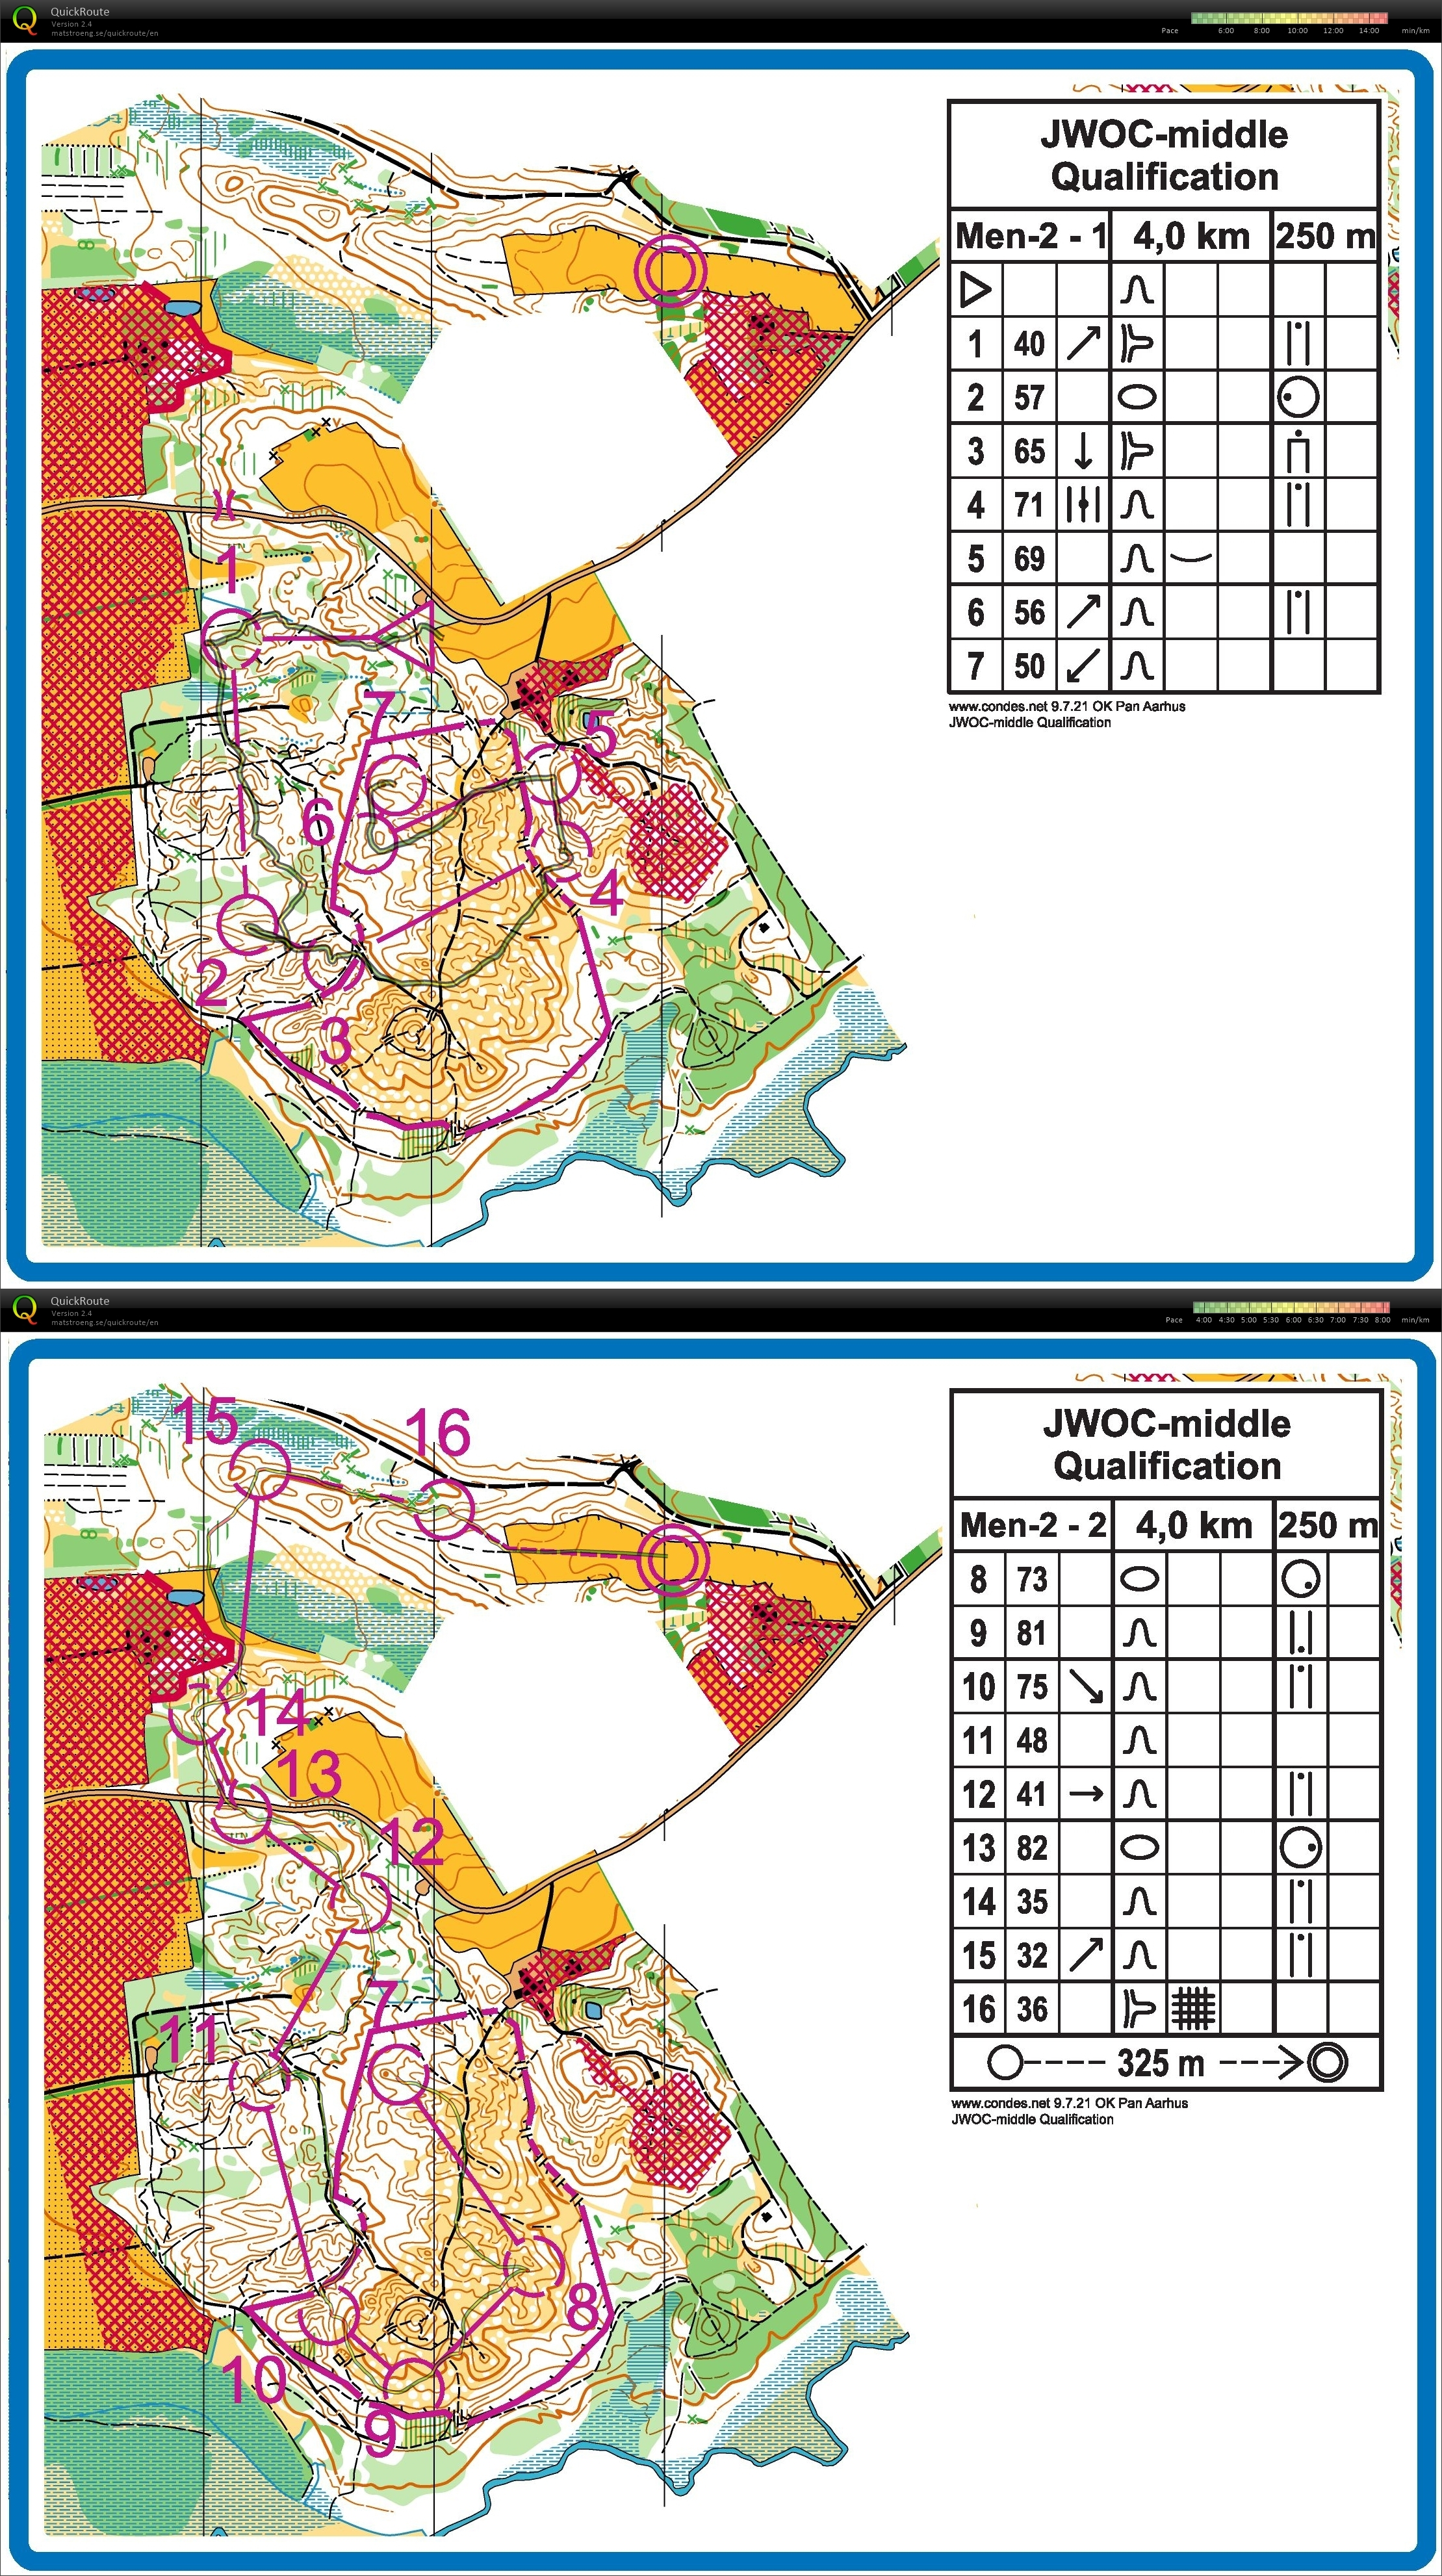 Junior World Orienteering Championships - JWOC - Middle Distance Qualification (10-07-2019)